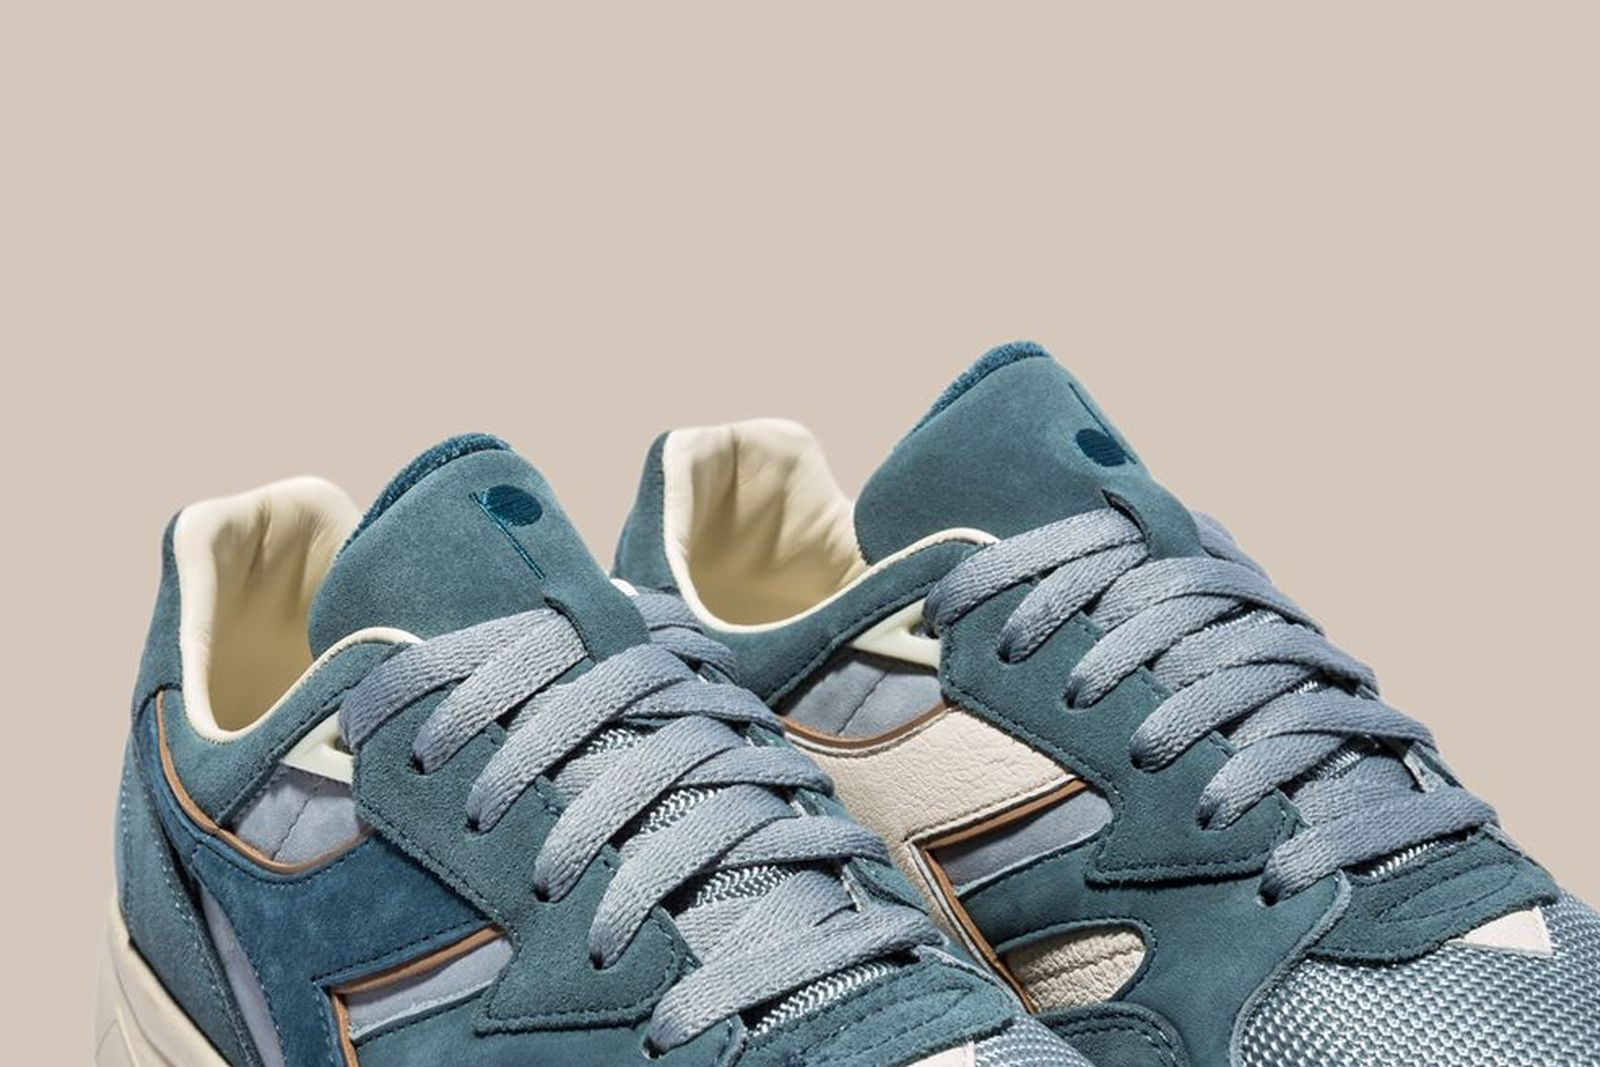 packer-diadora-n9002-molveno-release-date-price-product-02